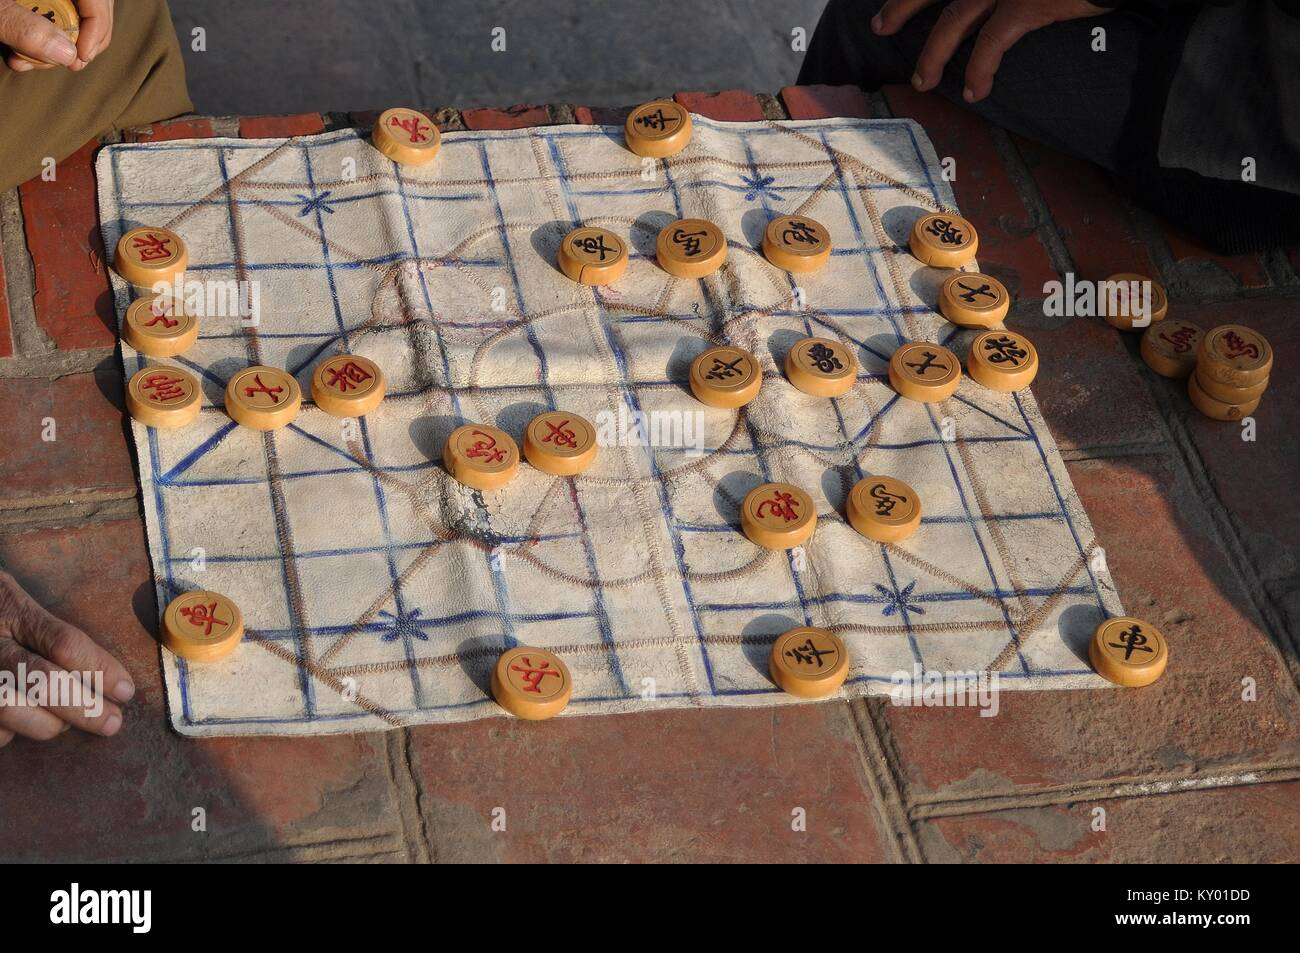 PLAYING A GAME OF XIANGQI (CHINESE CHESS) - Stock Image